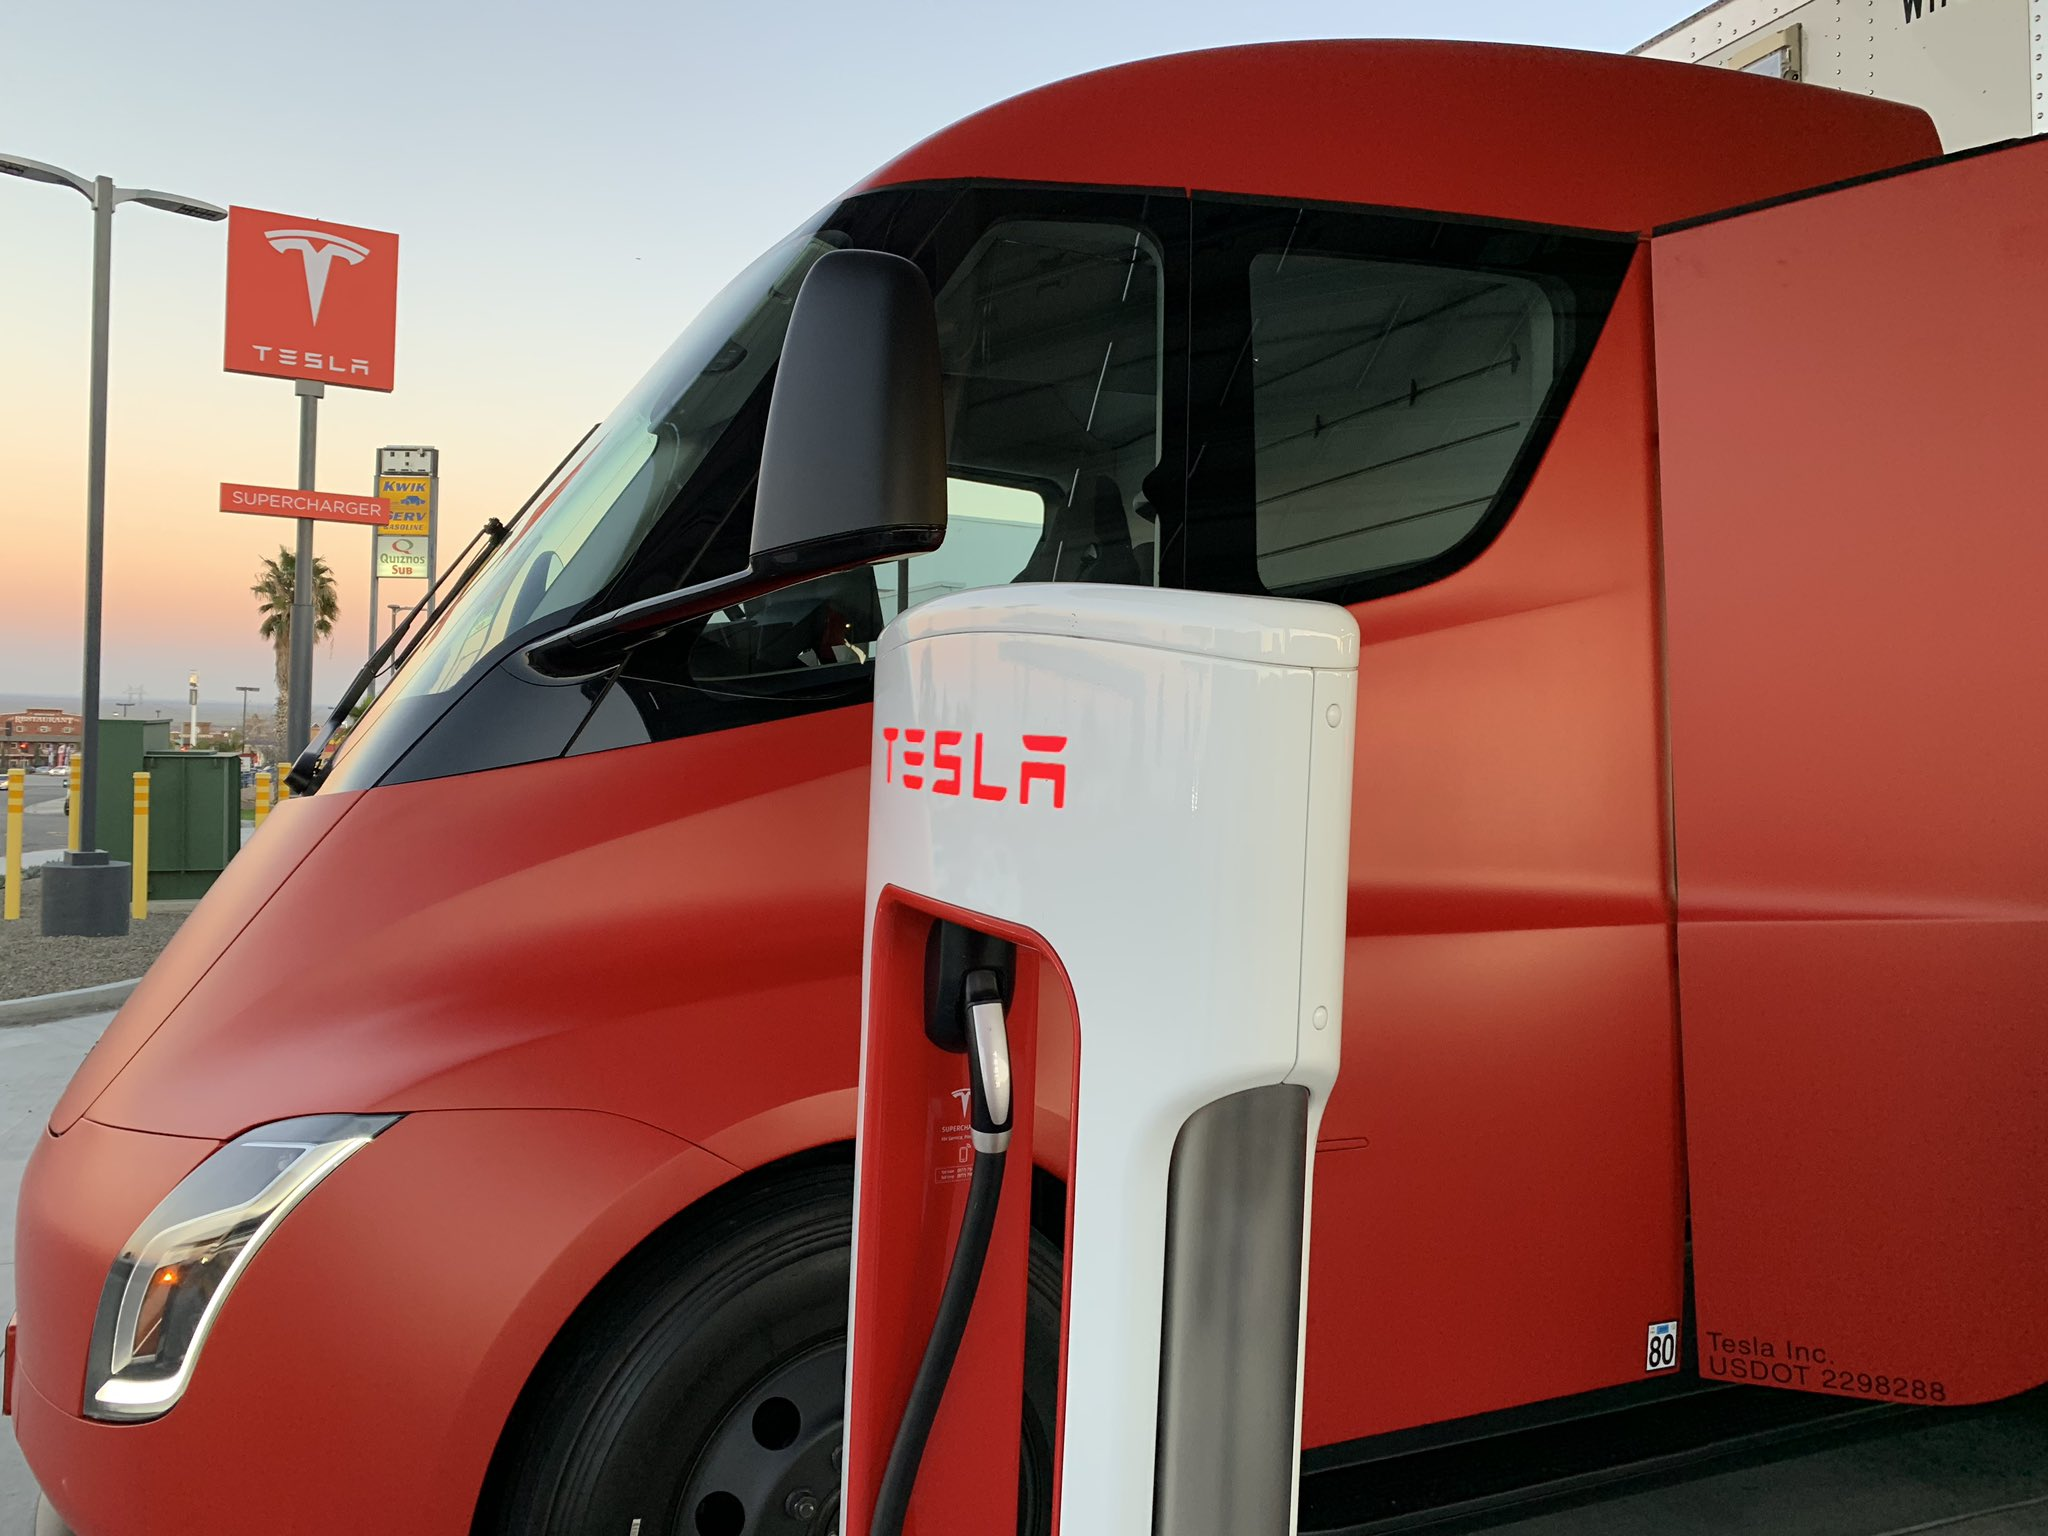 We present to you the 'Red Tesla Semi Truck' [HD Photos]